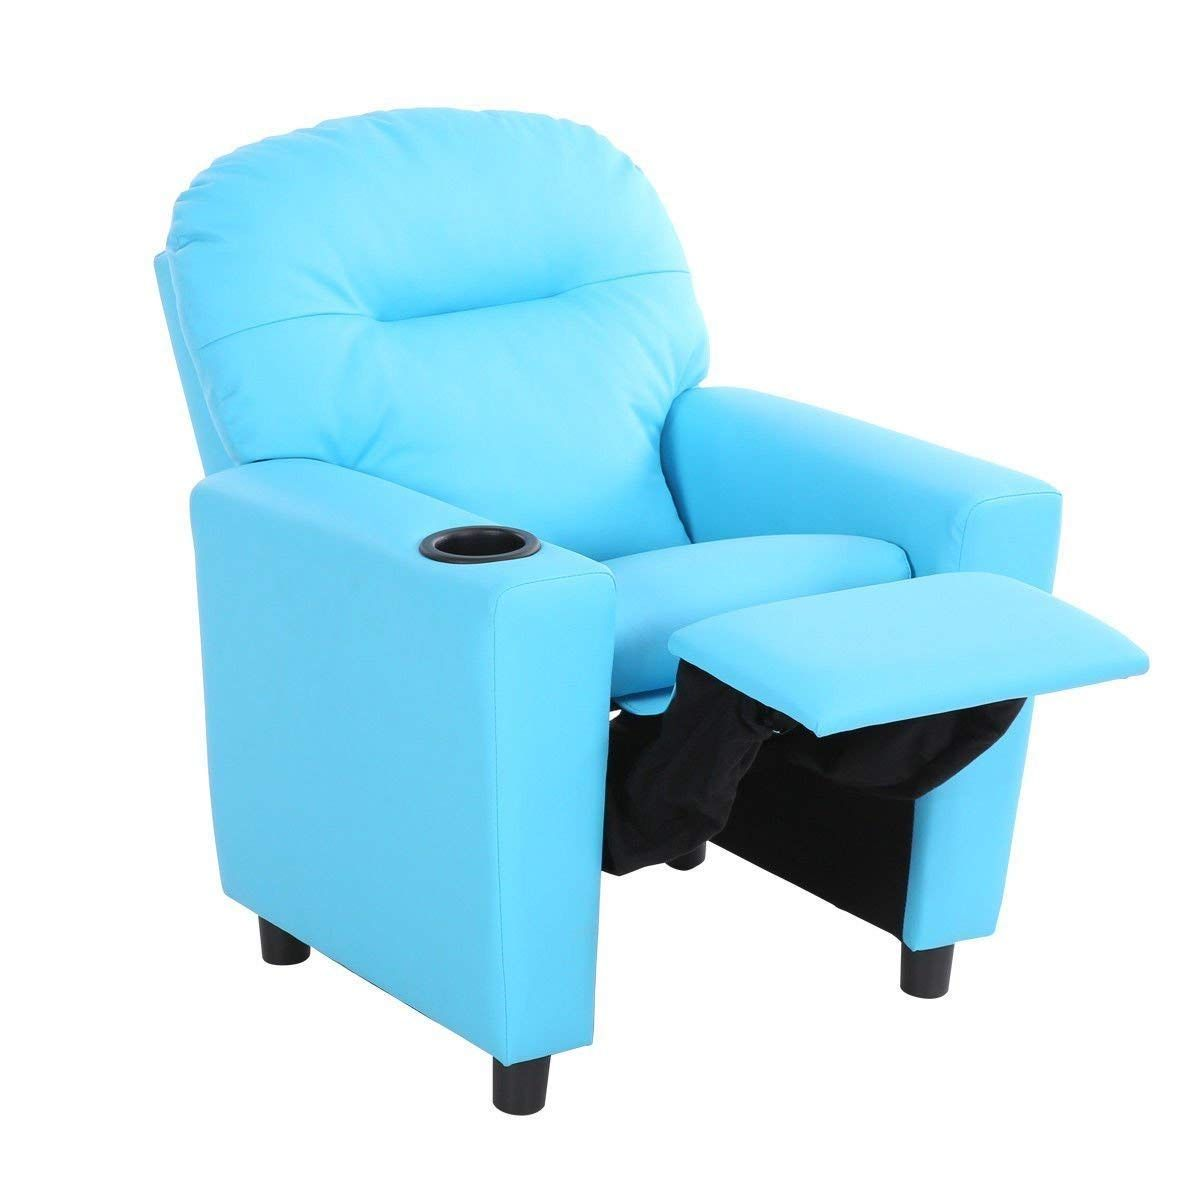 Costzon contemporary kids recliner pu leather lounge